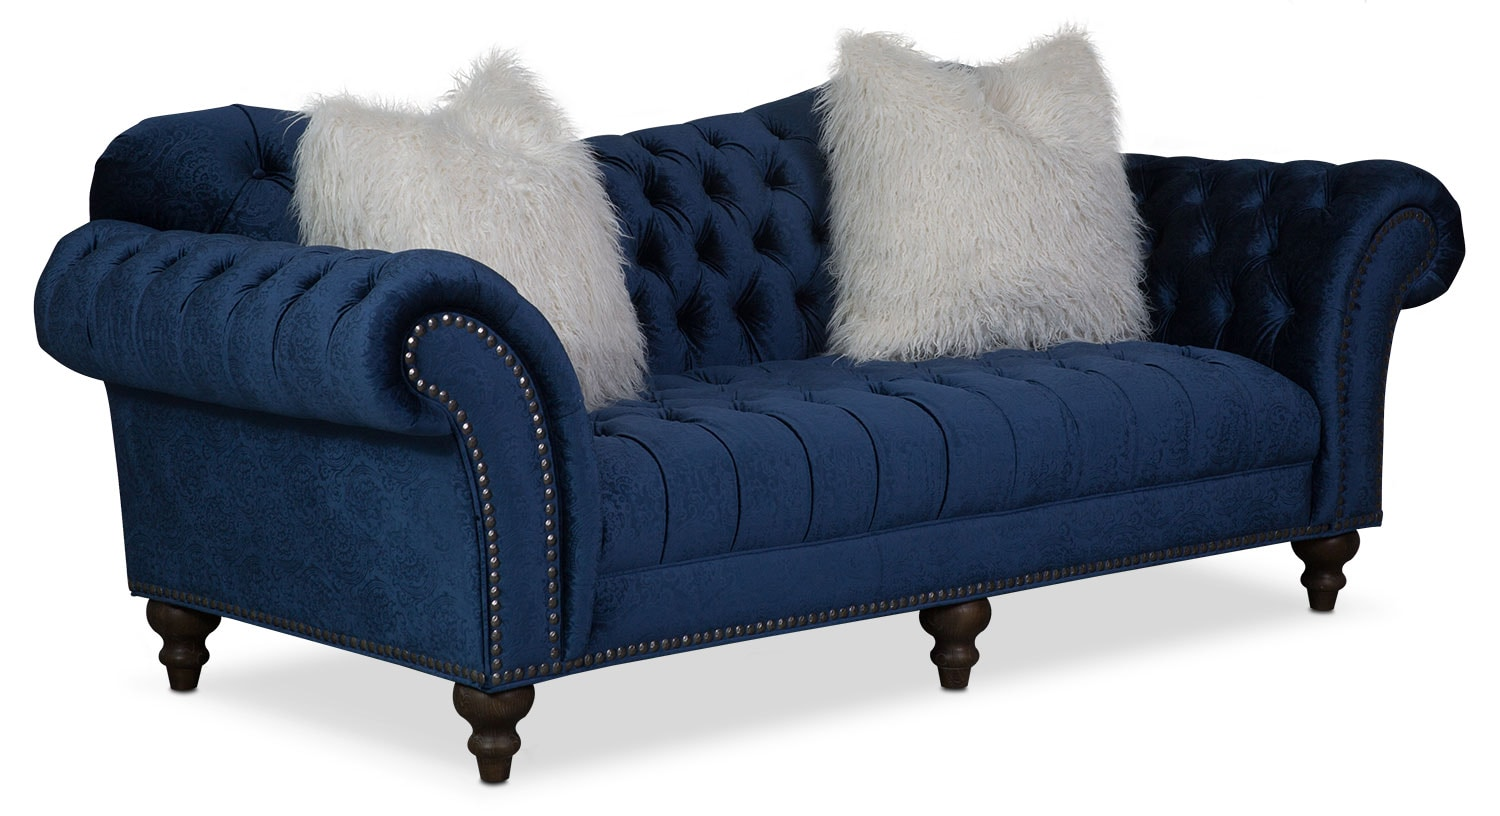 marco gray chaise sofa ikea kivik instructions sofas & couches | living room seating american signature ...